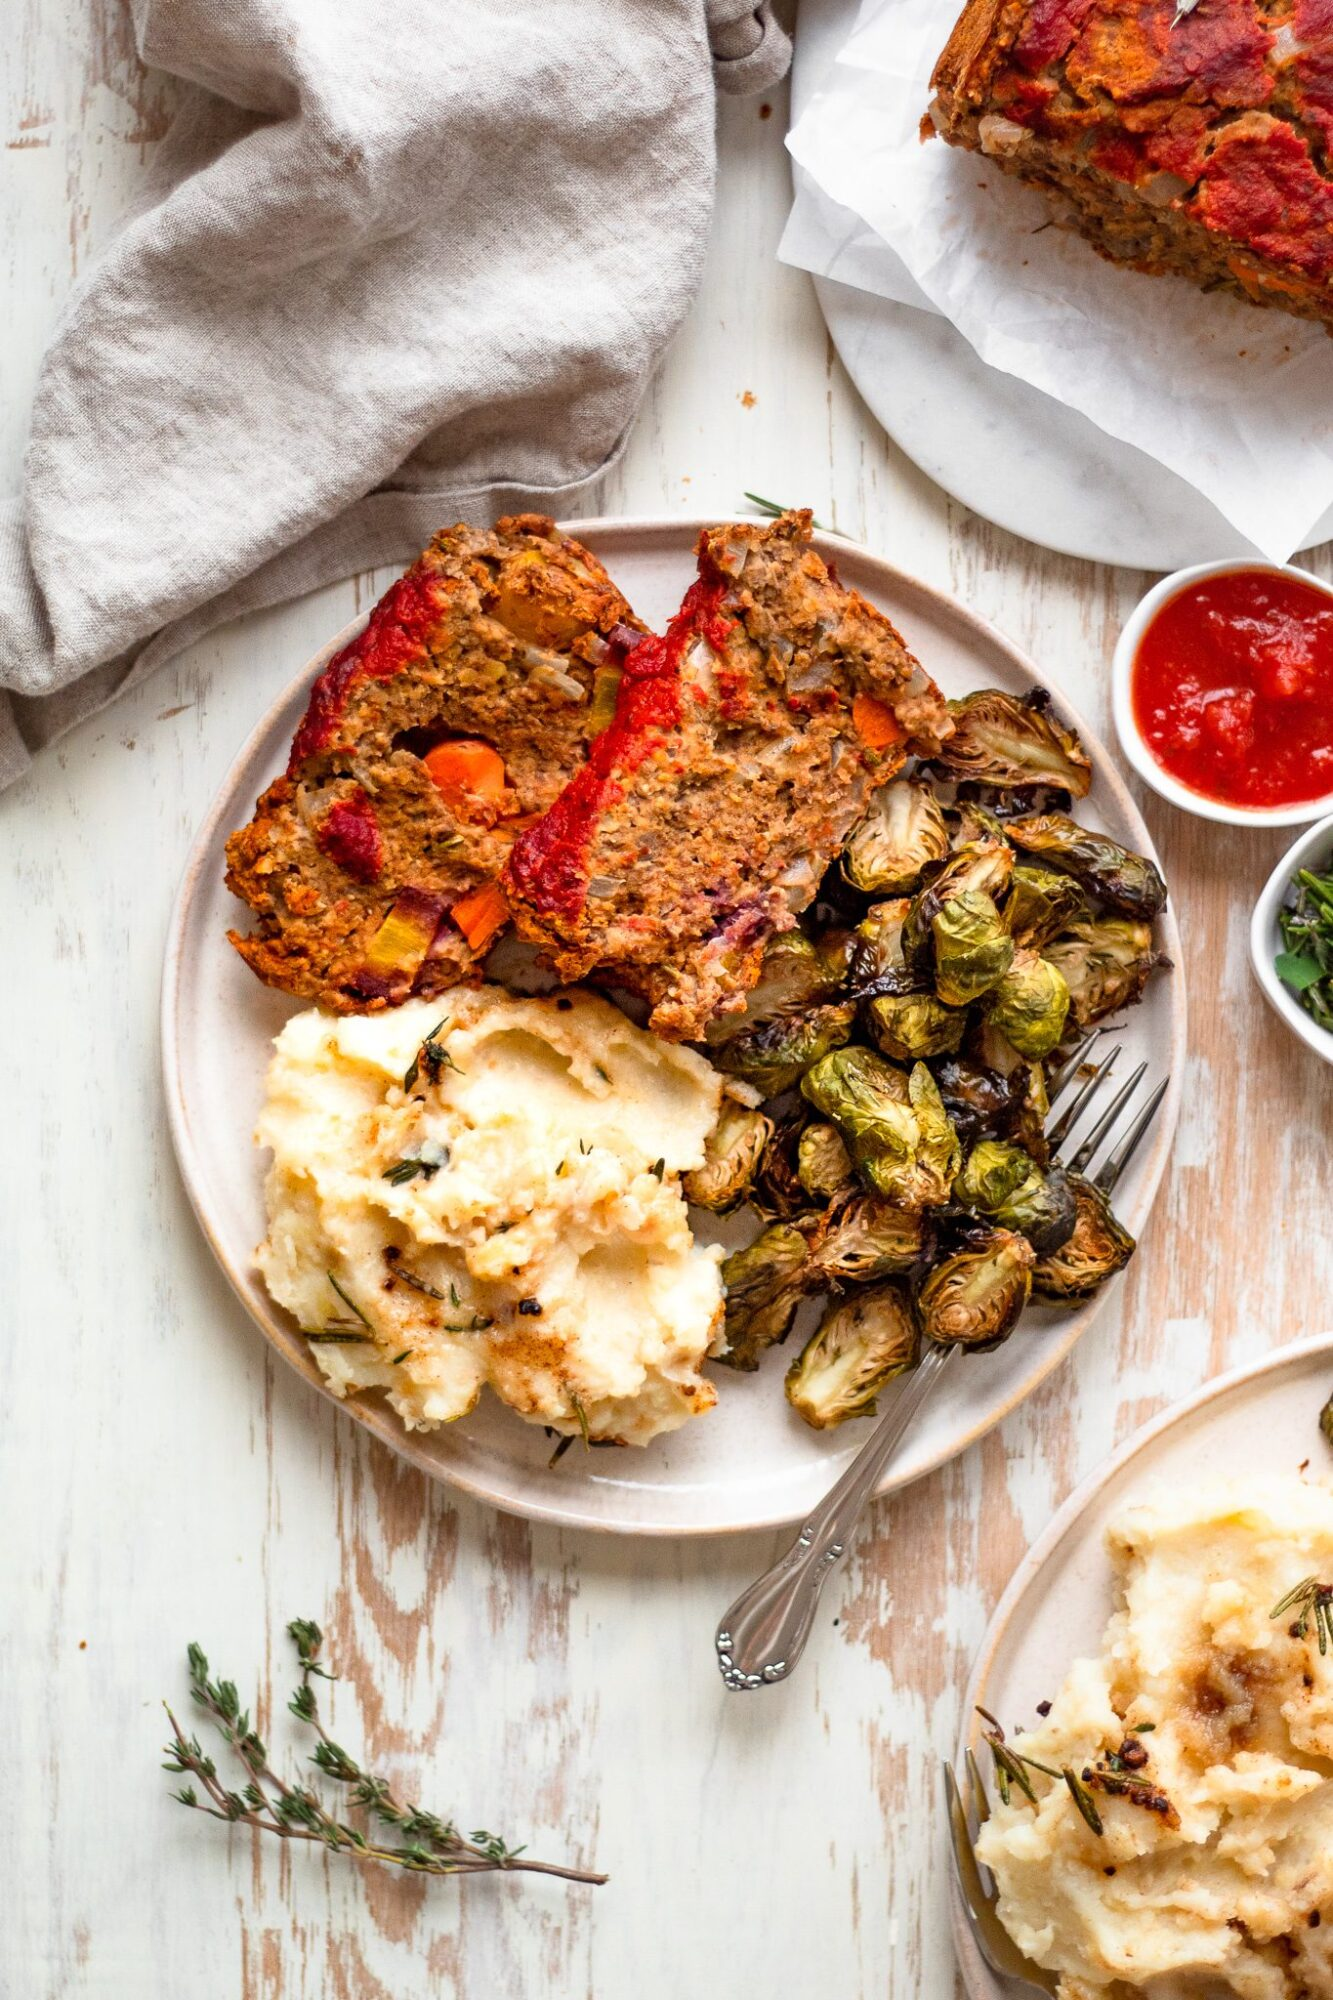 overhead of plate with lentil meatloaf, mashed potatoes, and brussels sprouts